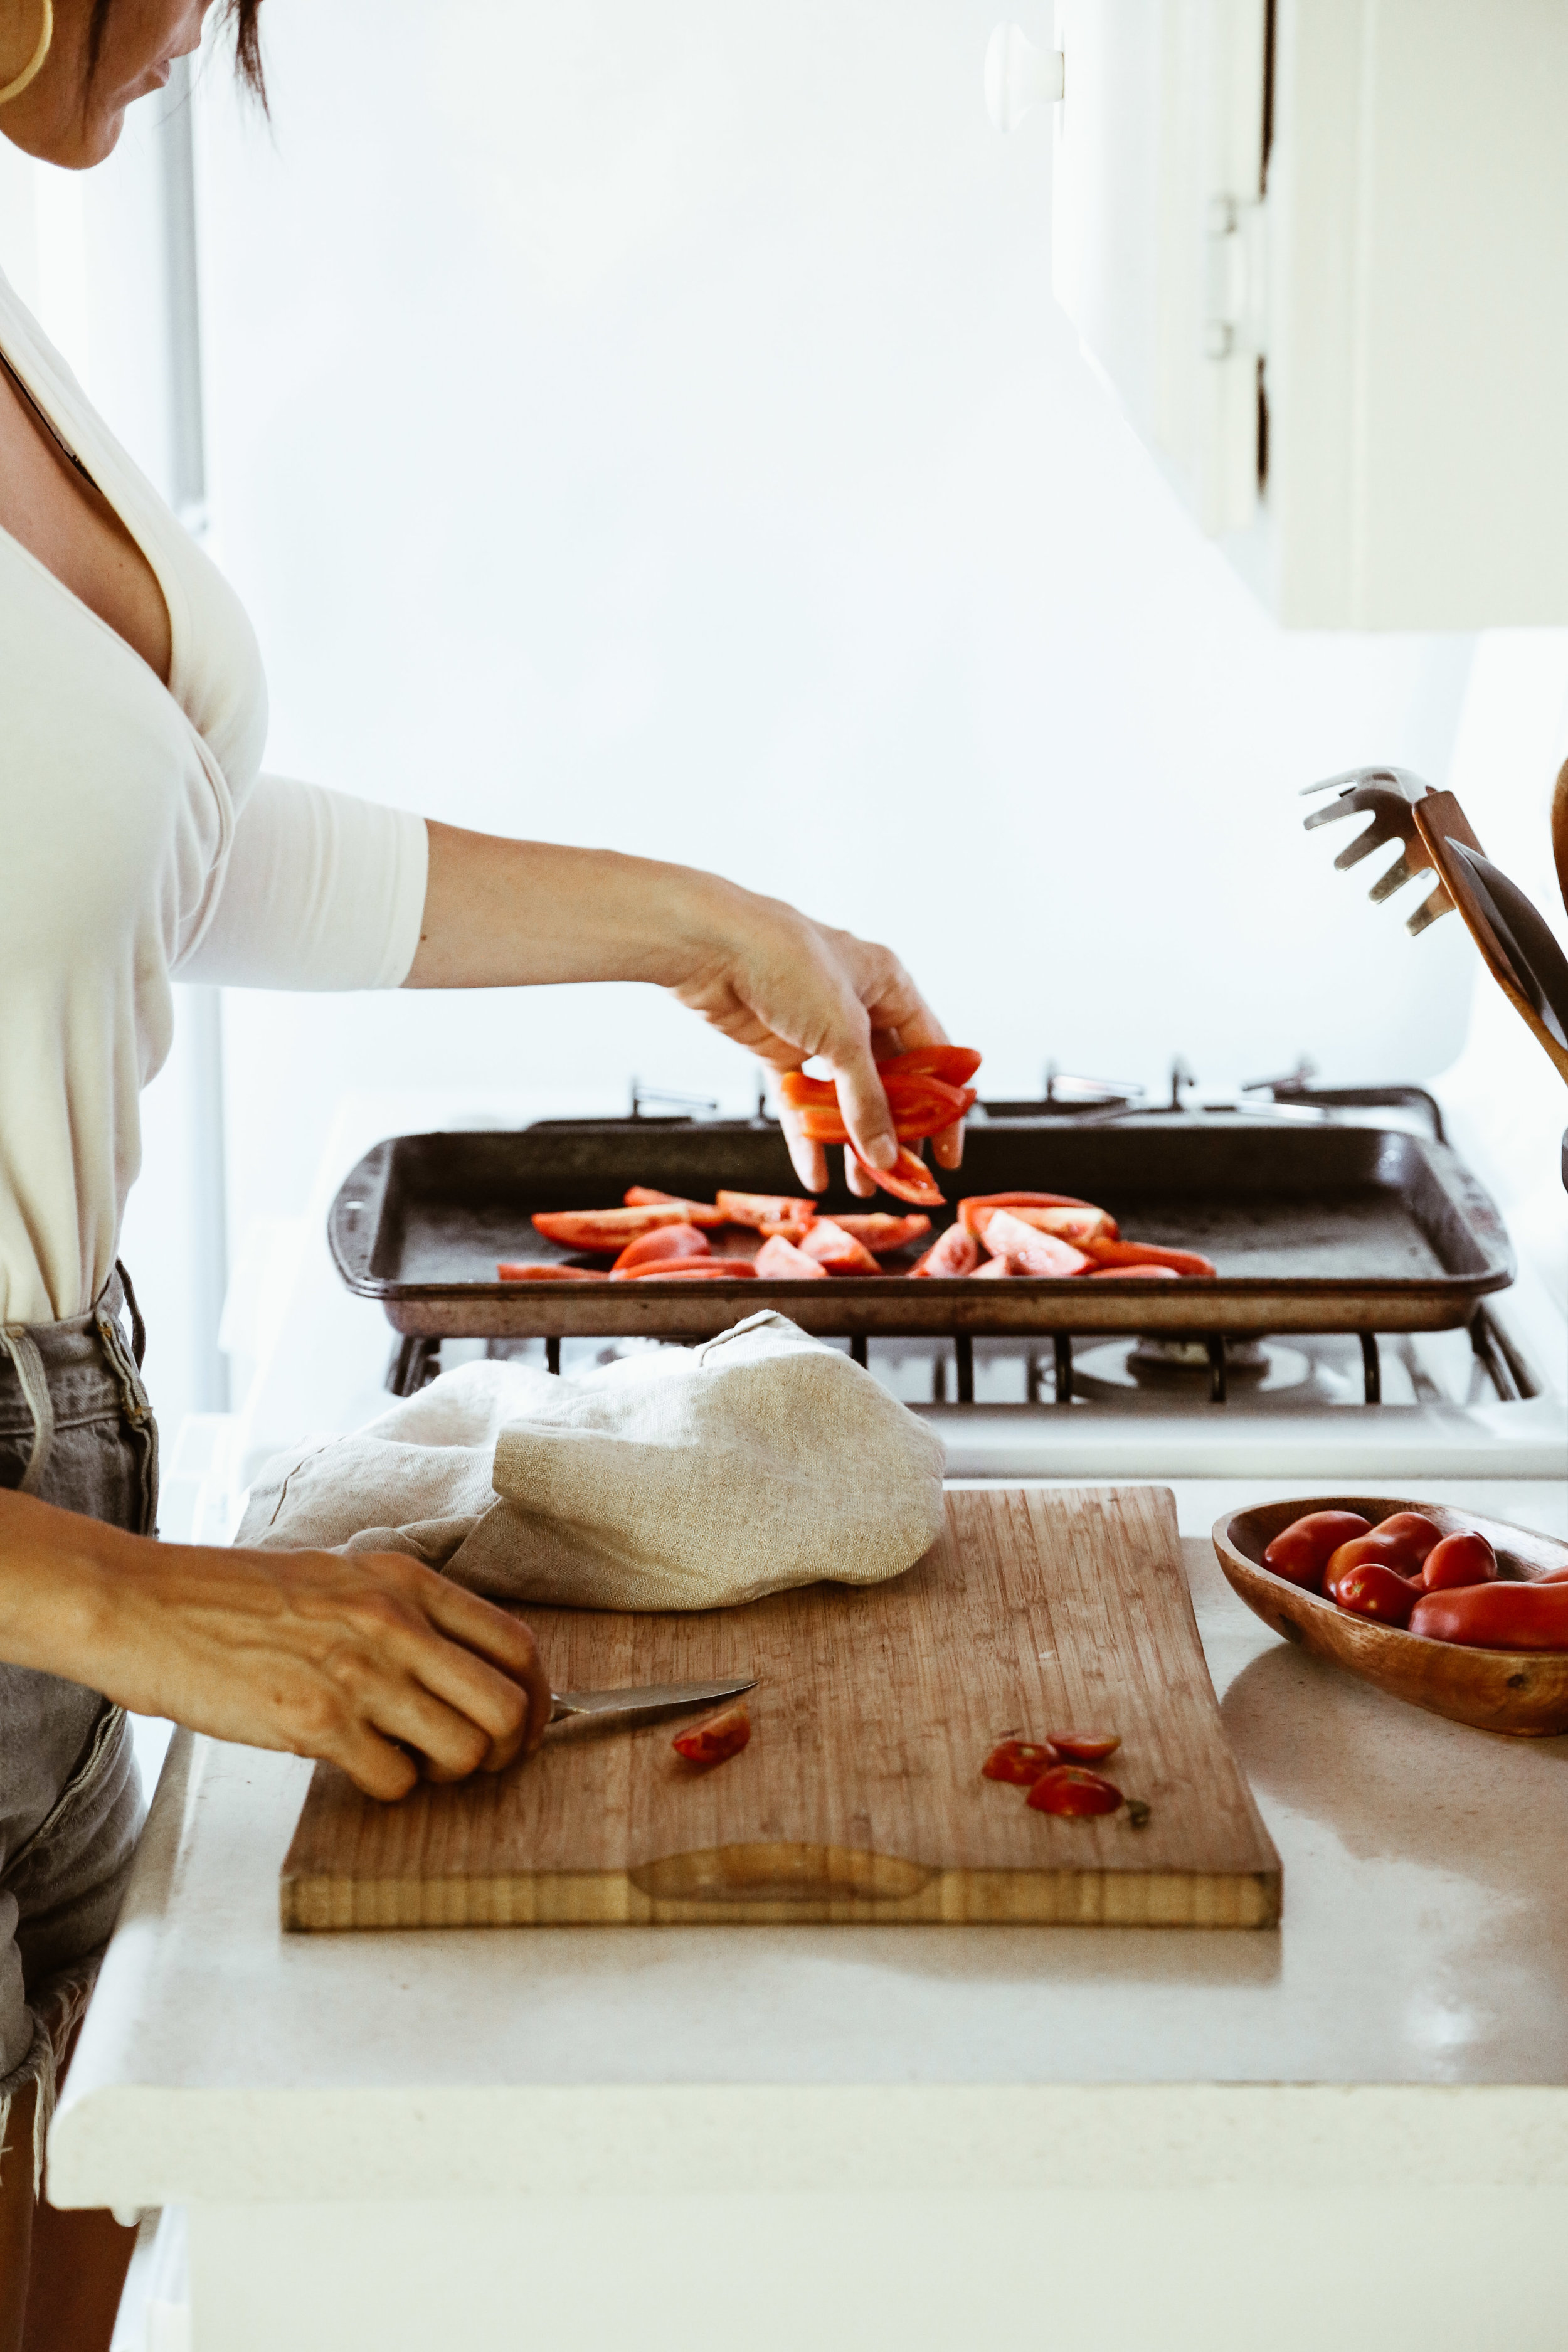 cooking with san marzano tomatoes.jpg